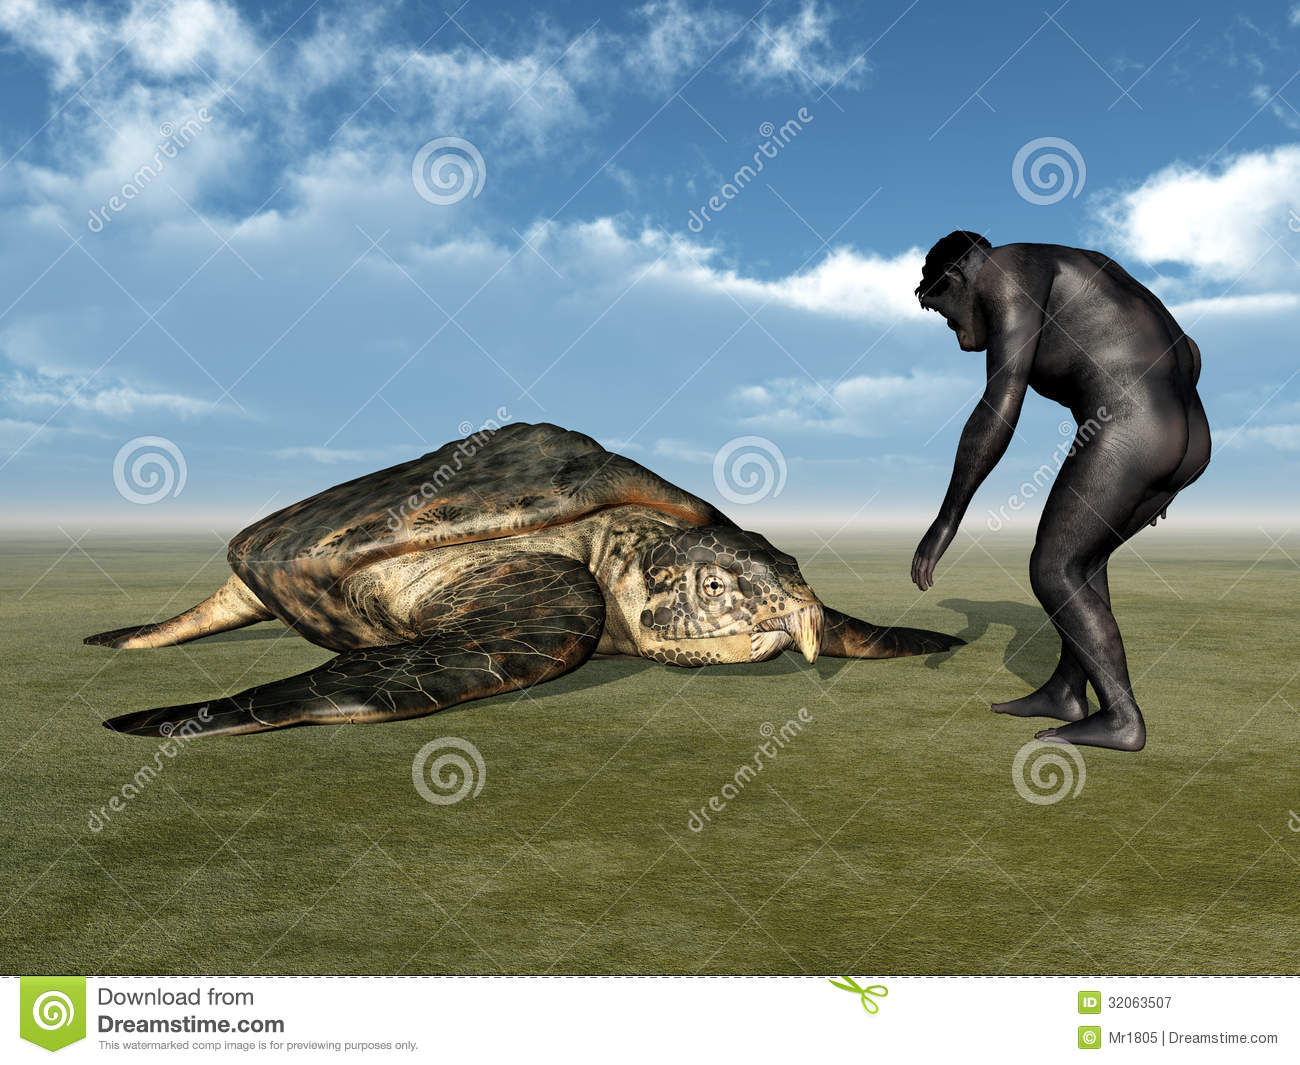 evolution of the sea turtle This video is about the evolution of turtles this video is about the evolution of turtles skip navigation sign in the survival of the sea turtle - duration: 4:26 ted-ed 746,064 views the evolution of man - 2014 the history human evolution.